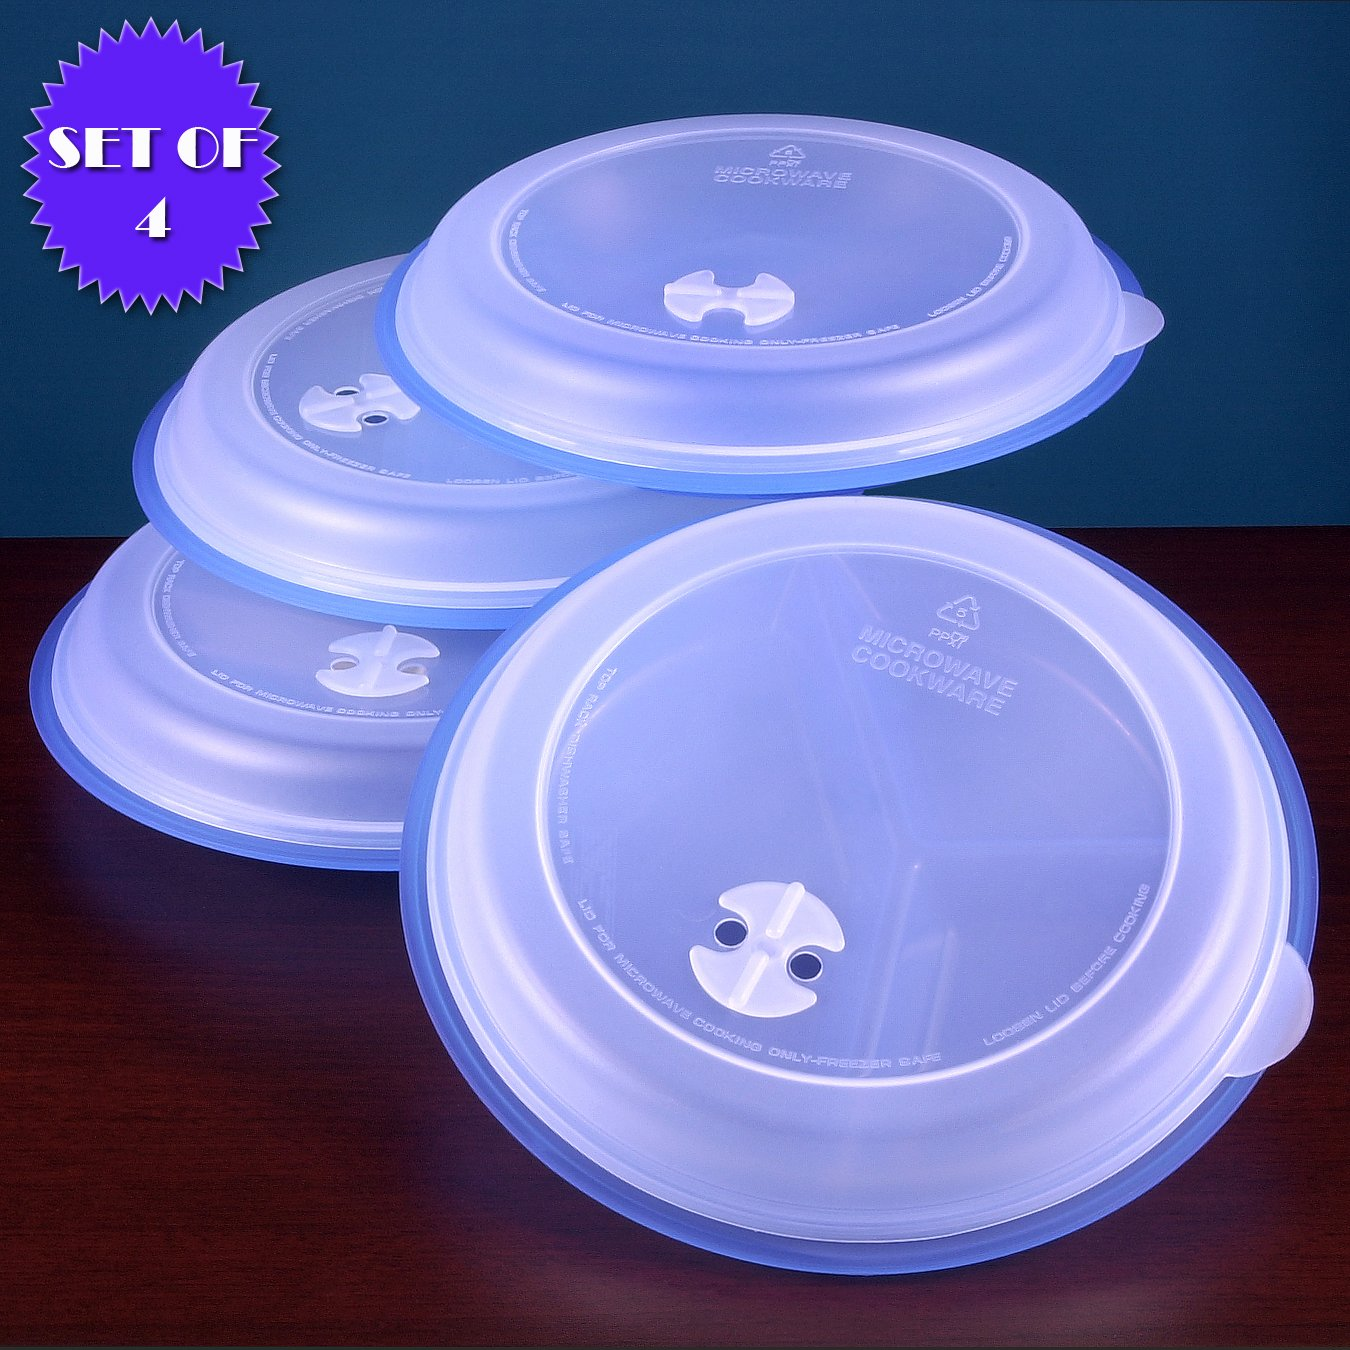 Amazon.com MICROWAVE DIVIDED PLATES WITH VENTED LIDS (Set of 8 blue) Kitchen Storage And Organization Product Sets Kitchen u0026 Dining  sc 1 st  Amazon.com & Amazon.com: MICROWAVE DIVIDED PLATES WITH VENTED LIDS (Set of 8 ...